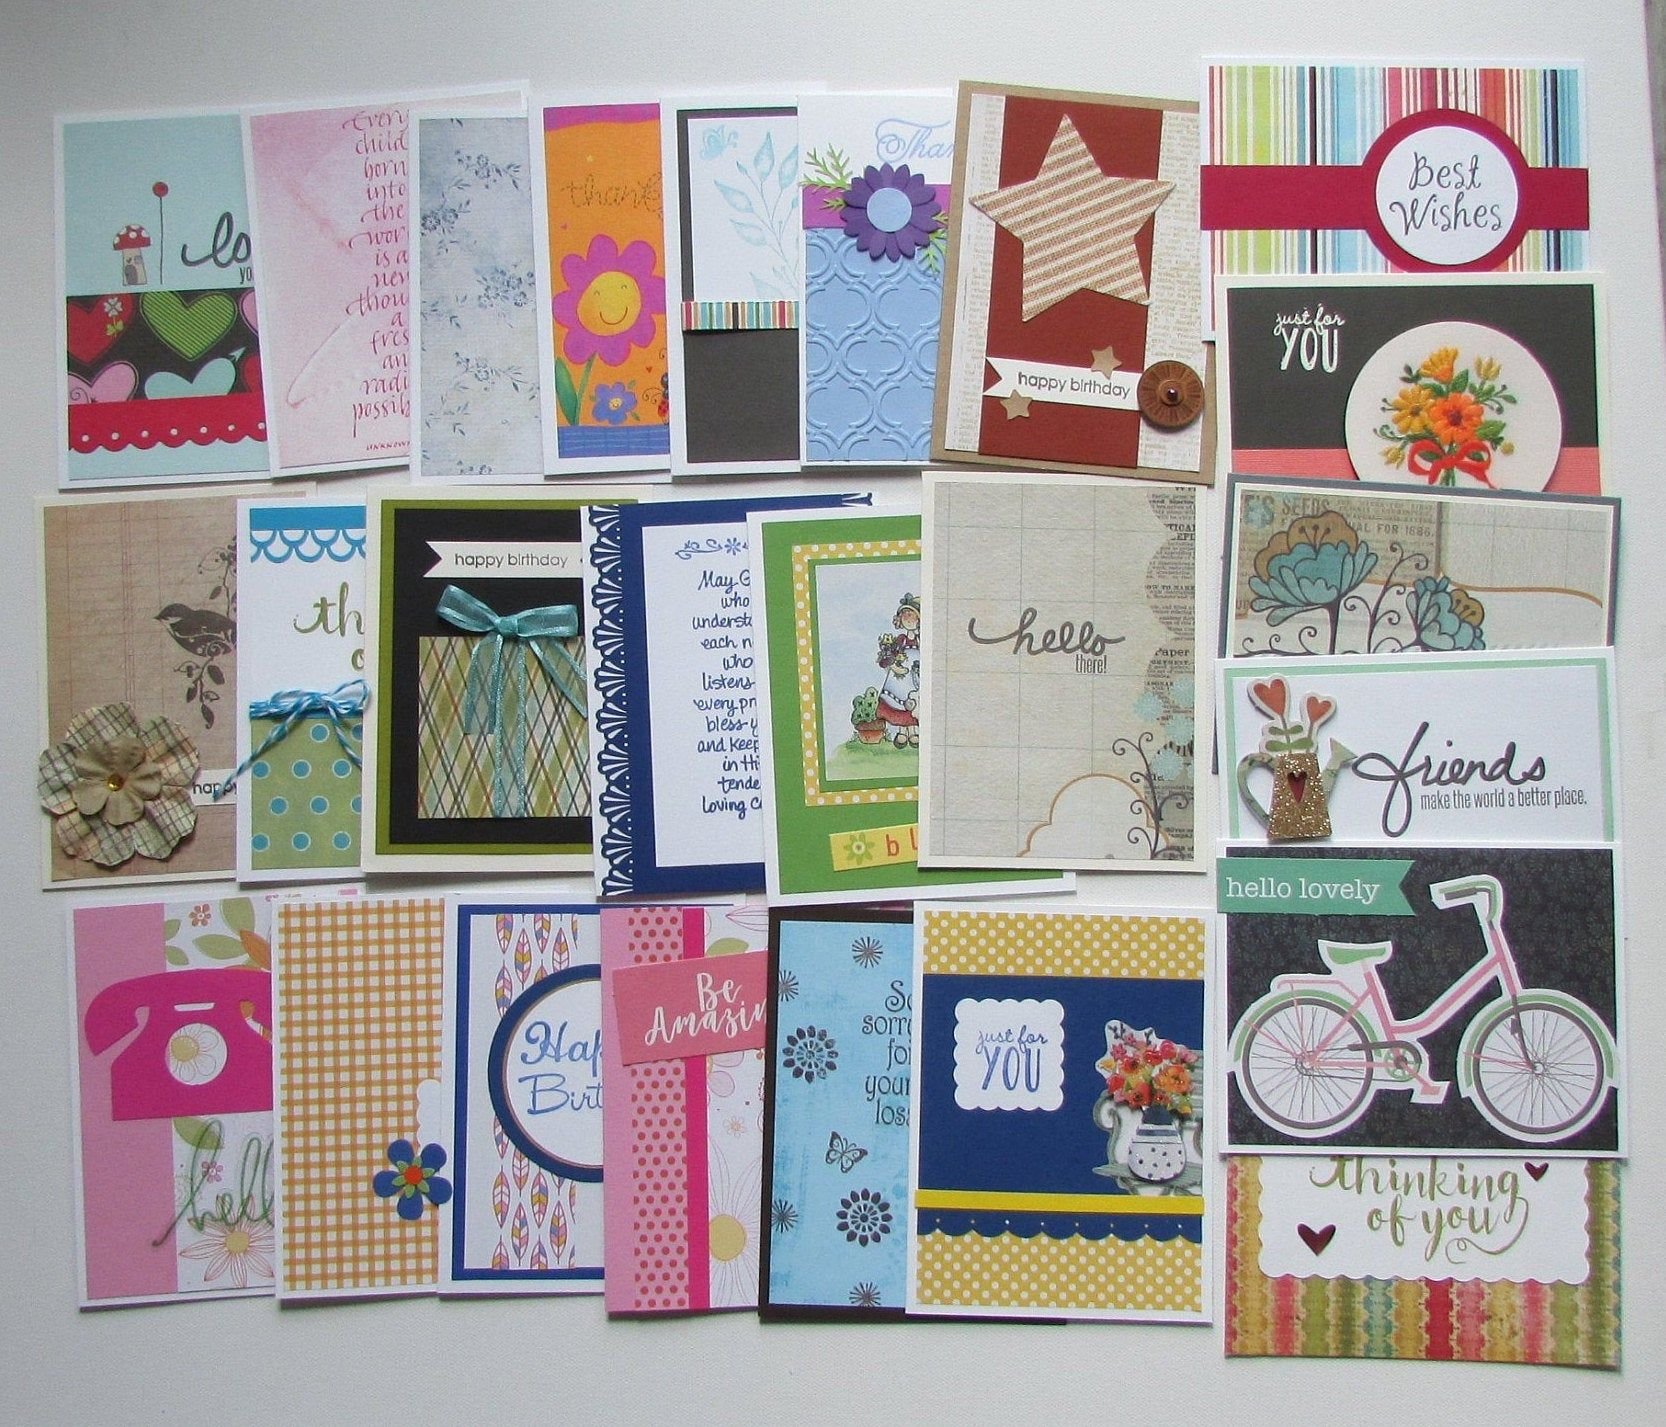 25 Handmade Cards Assorted Greeting Cards Bulk Cards Variety Card Sets Birthday Cards Thank You Cards Pretty Cards Love Cards Homemade Cards Assorted Greeting Cards Cards Handmade Pretty Cards